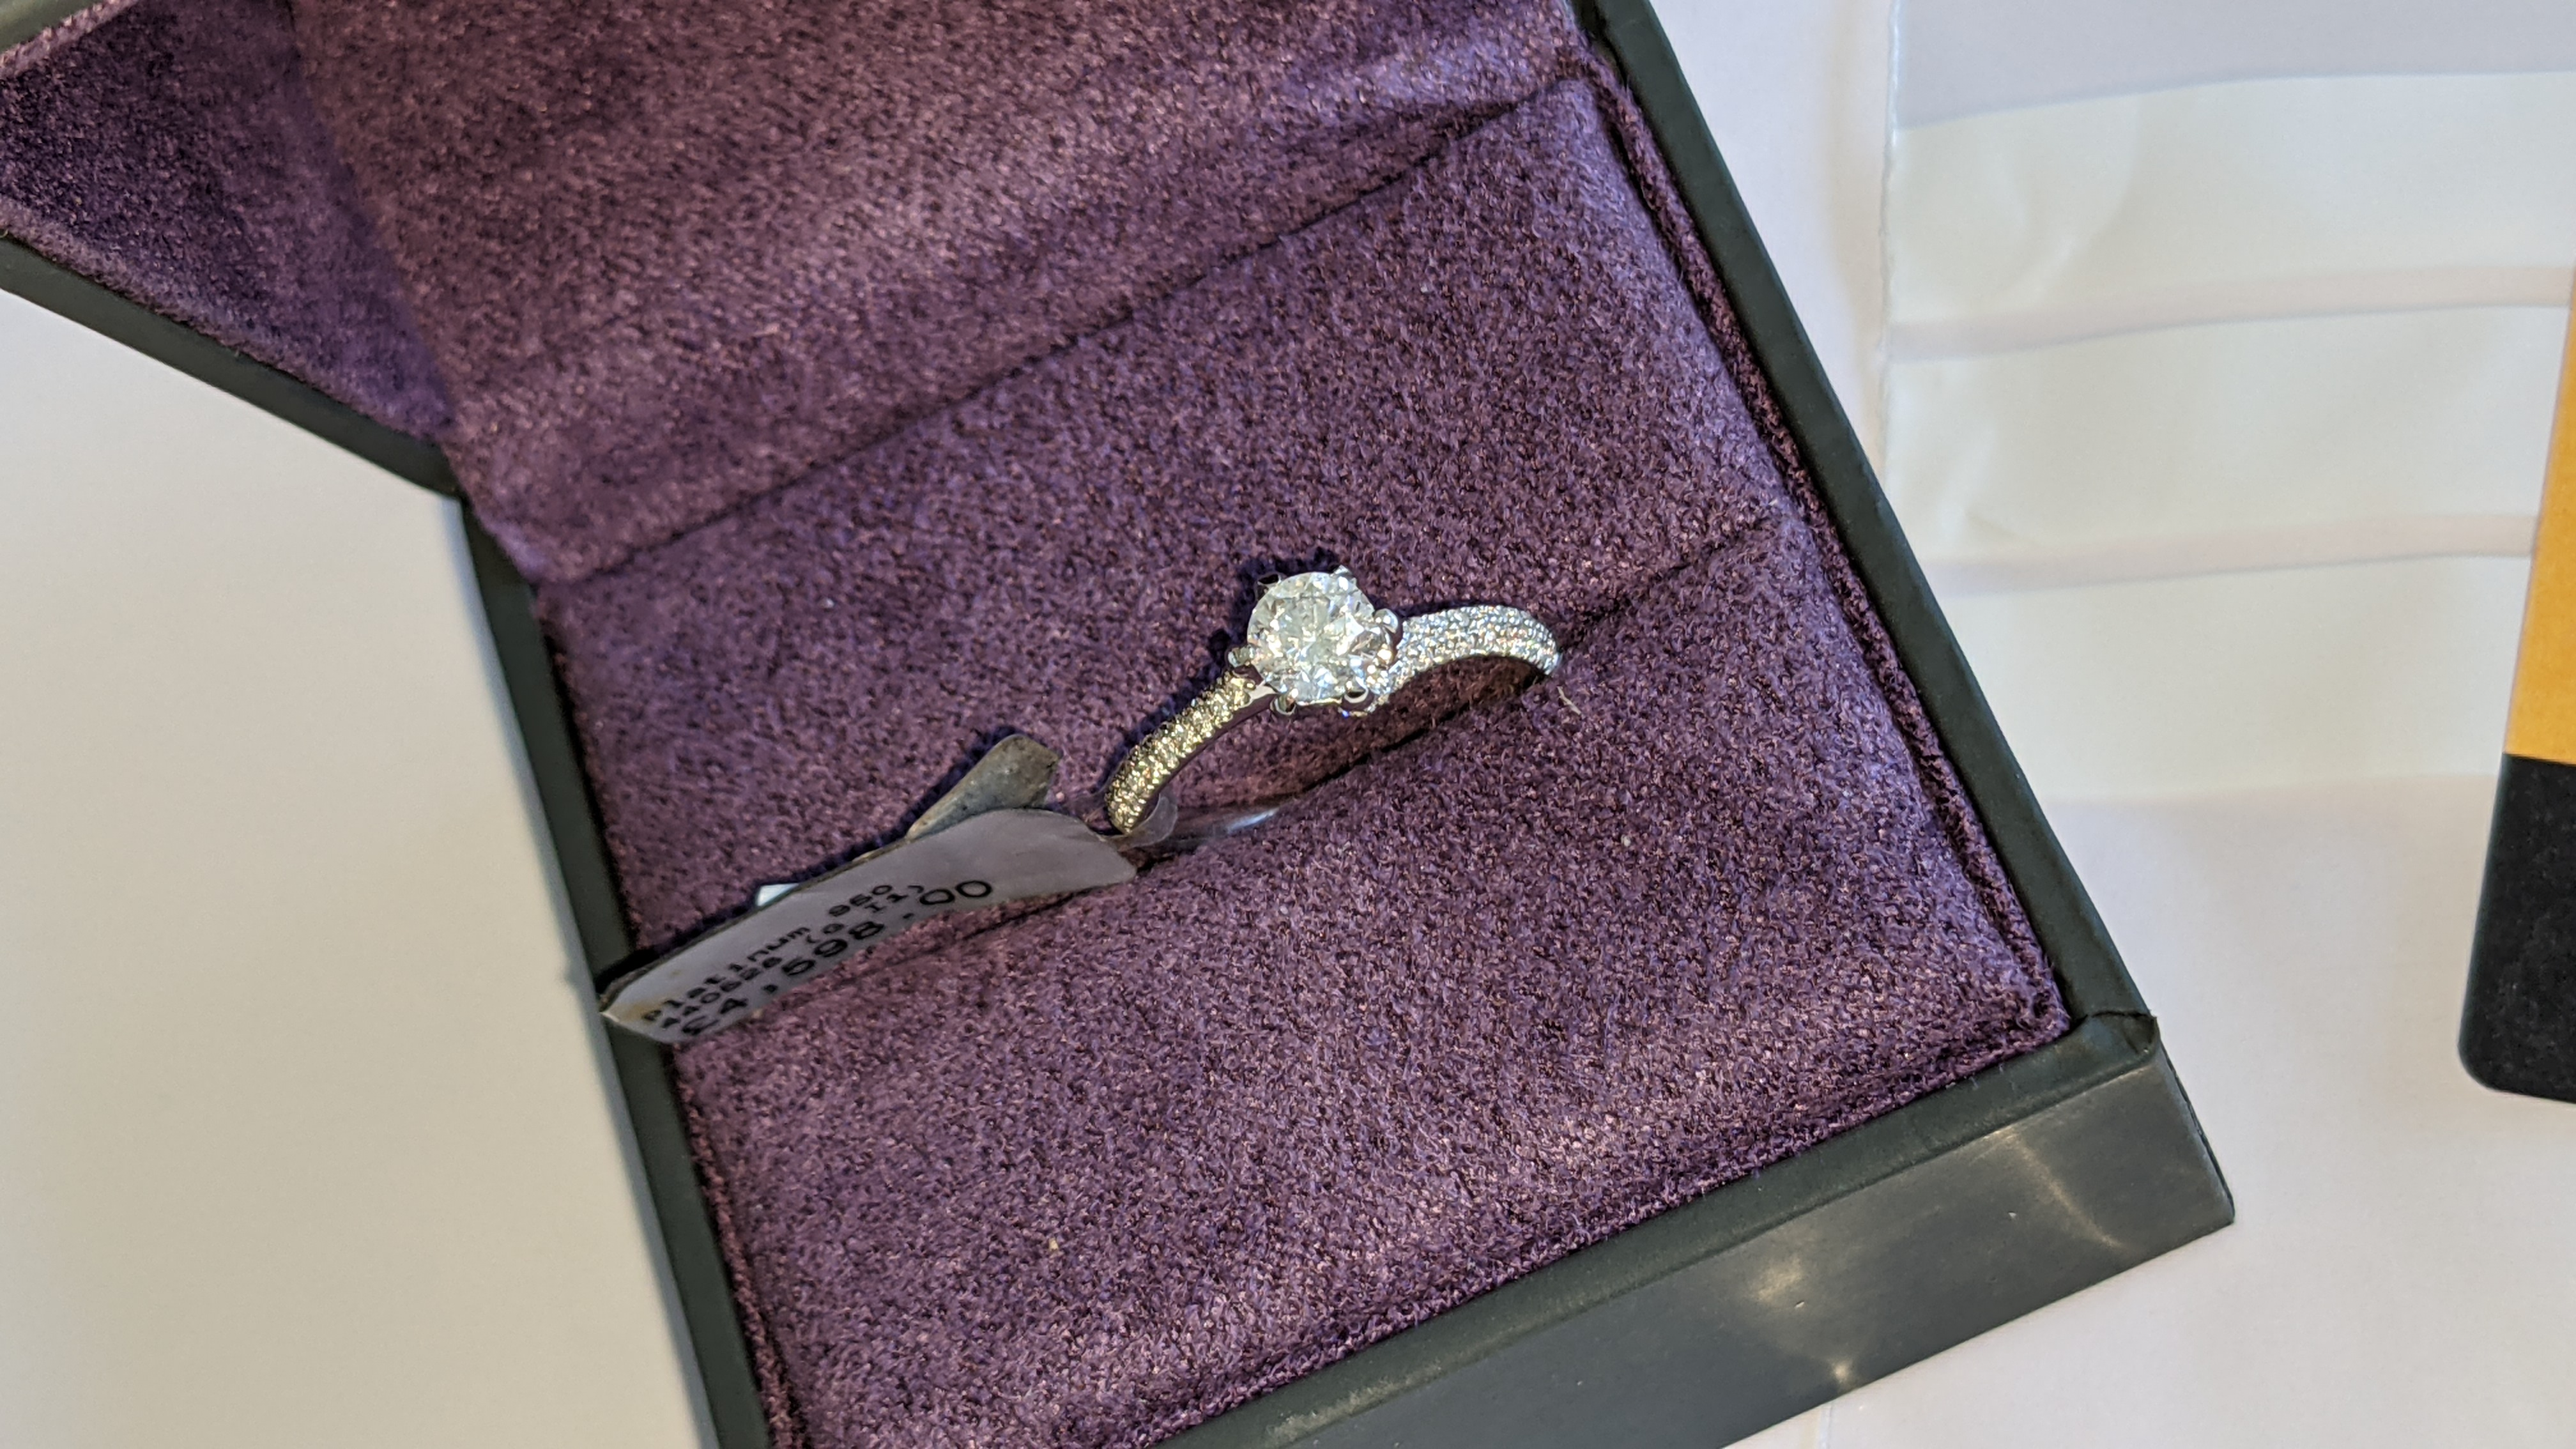 Platinum 950 diamond ring with 0.55ct central stone & 0.348ct of smaller stones on the shoulders. RR - Image 4 of 16